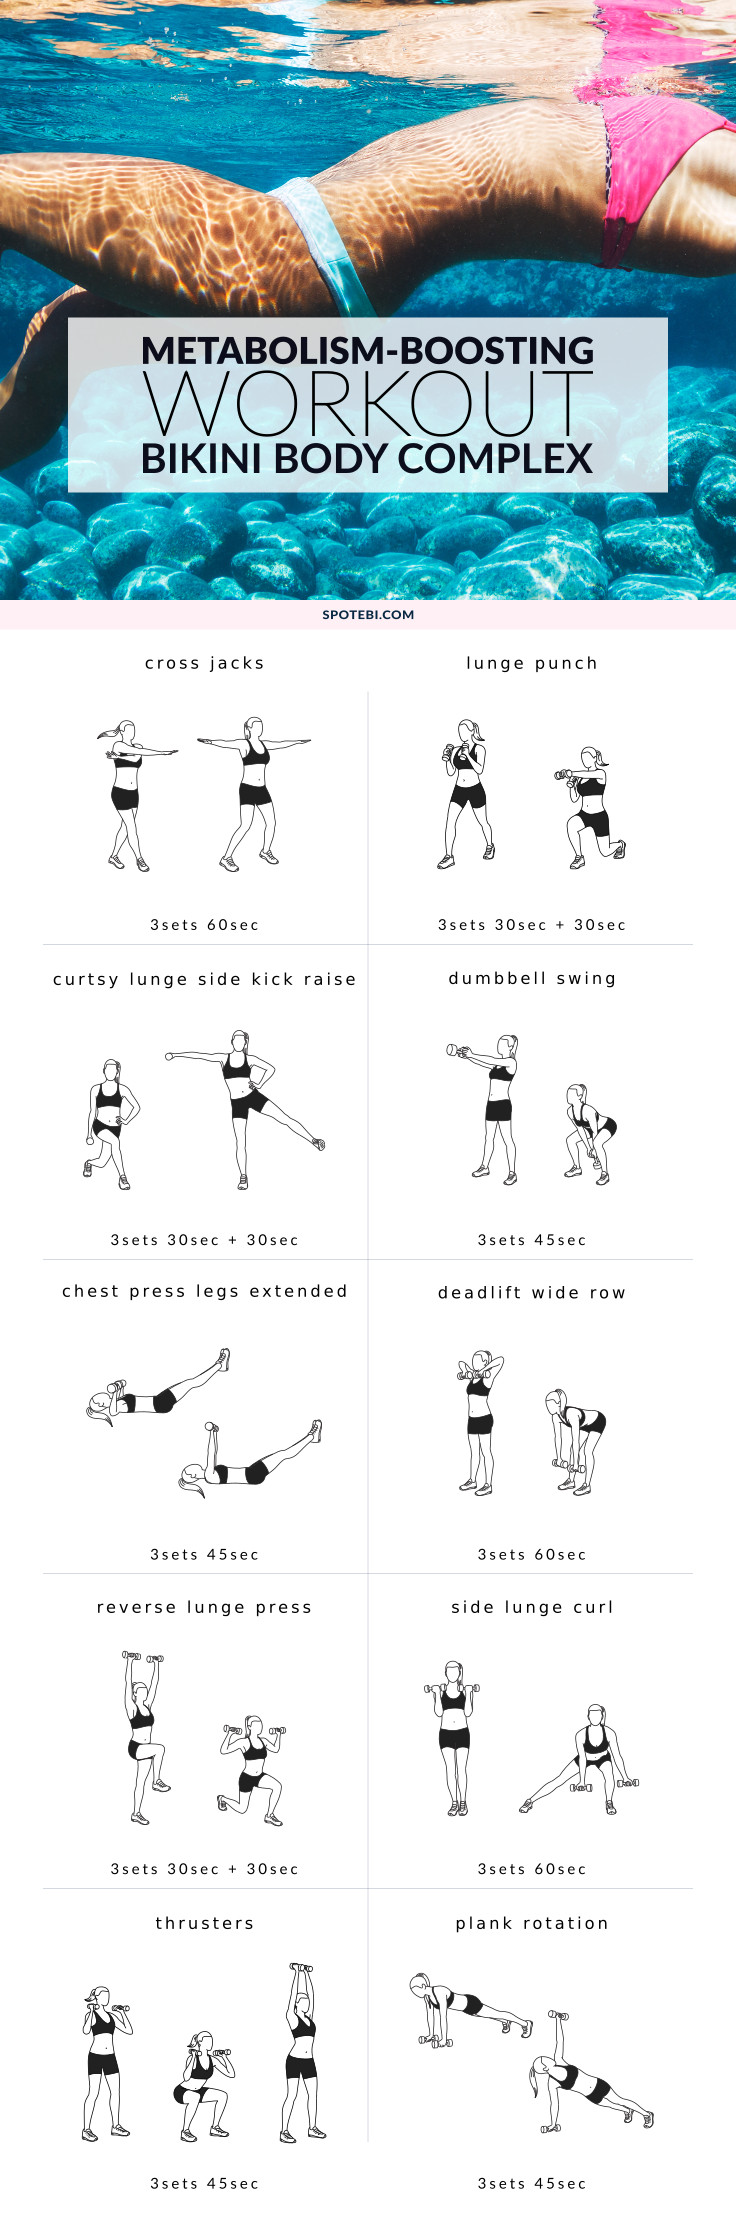 Tone your body from head to toe and get ready for bikini season with this full body workout for women. Grab a set of dumbbells, turn on the music and build metabolism-boosting muscles, while sculpting your entire body! https://www.spotebi.com/workout-routines/full-body-workout-for-women-metabolism-boosting-routine/